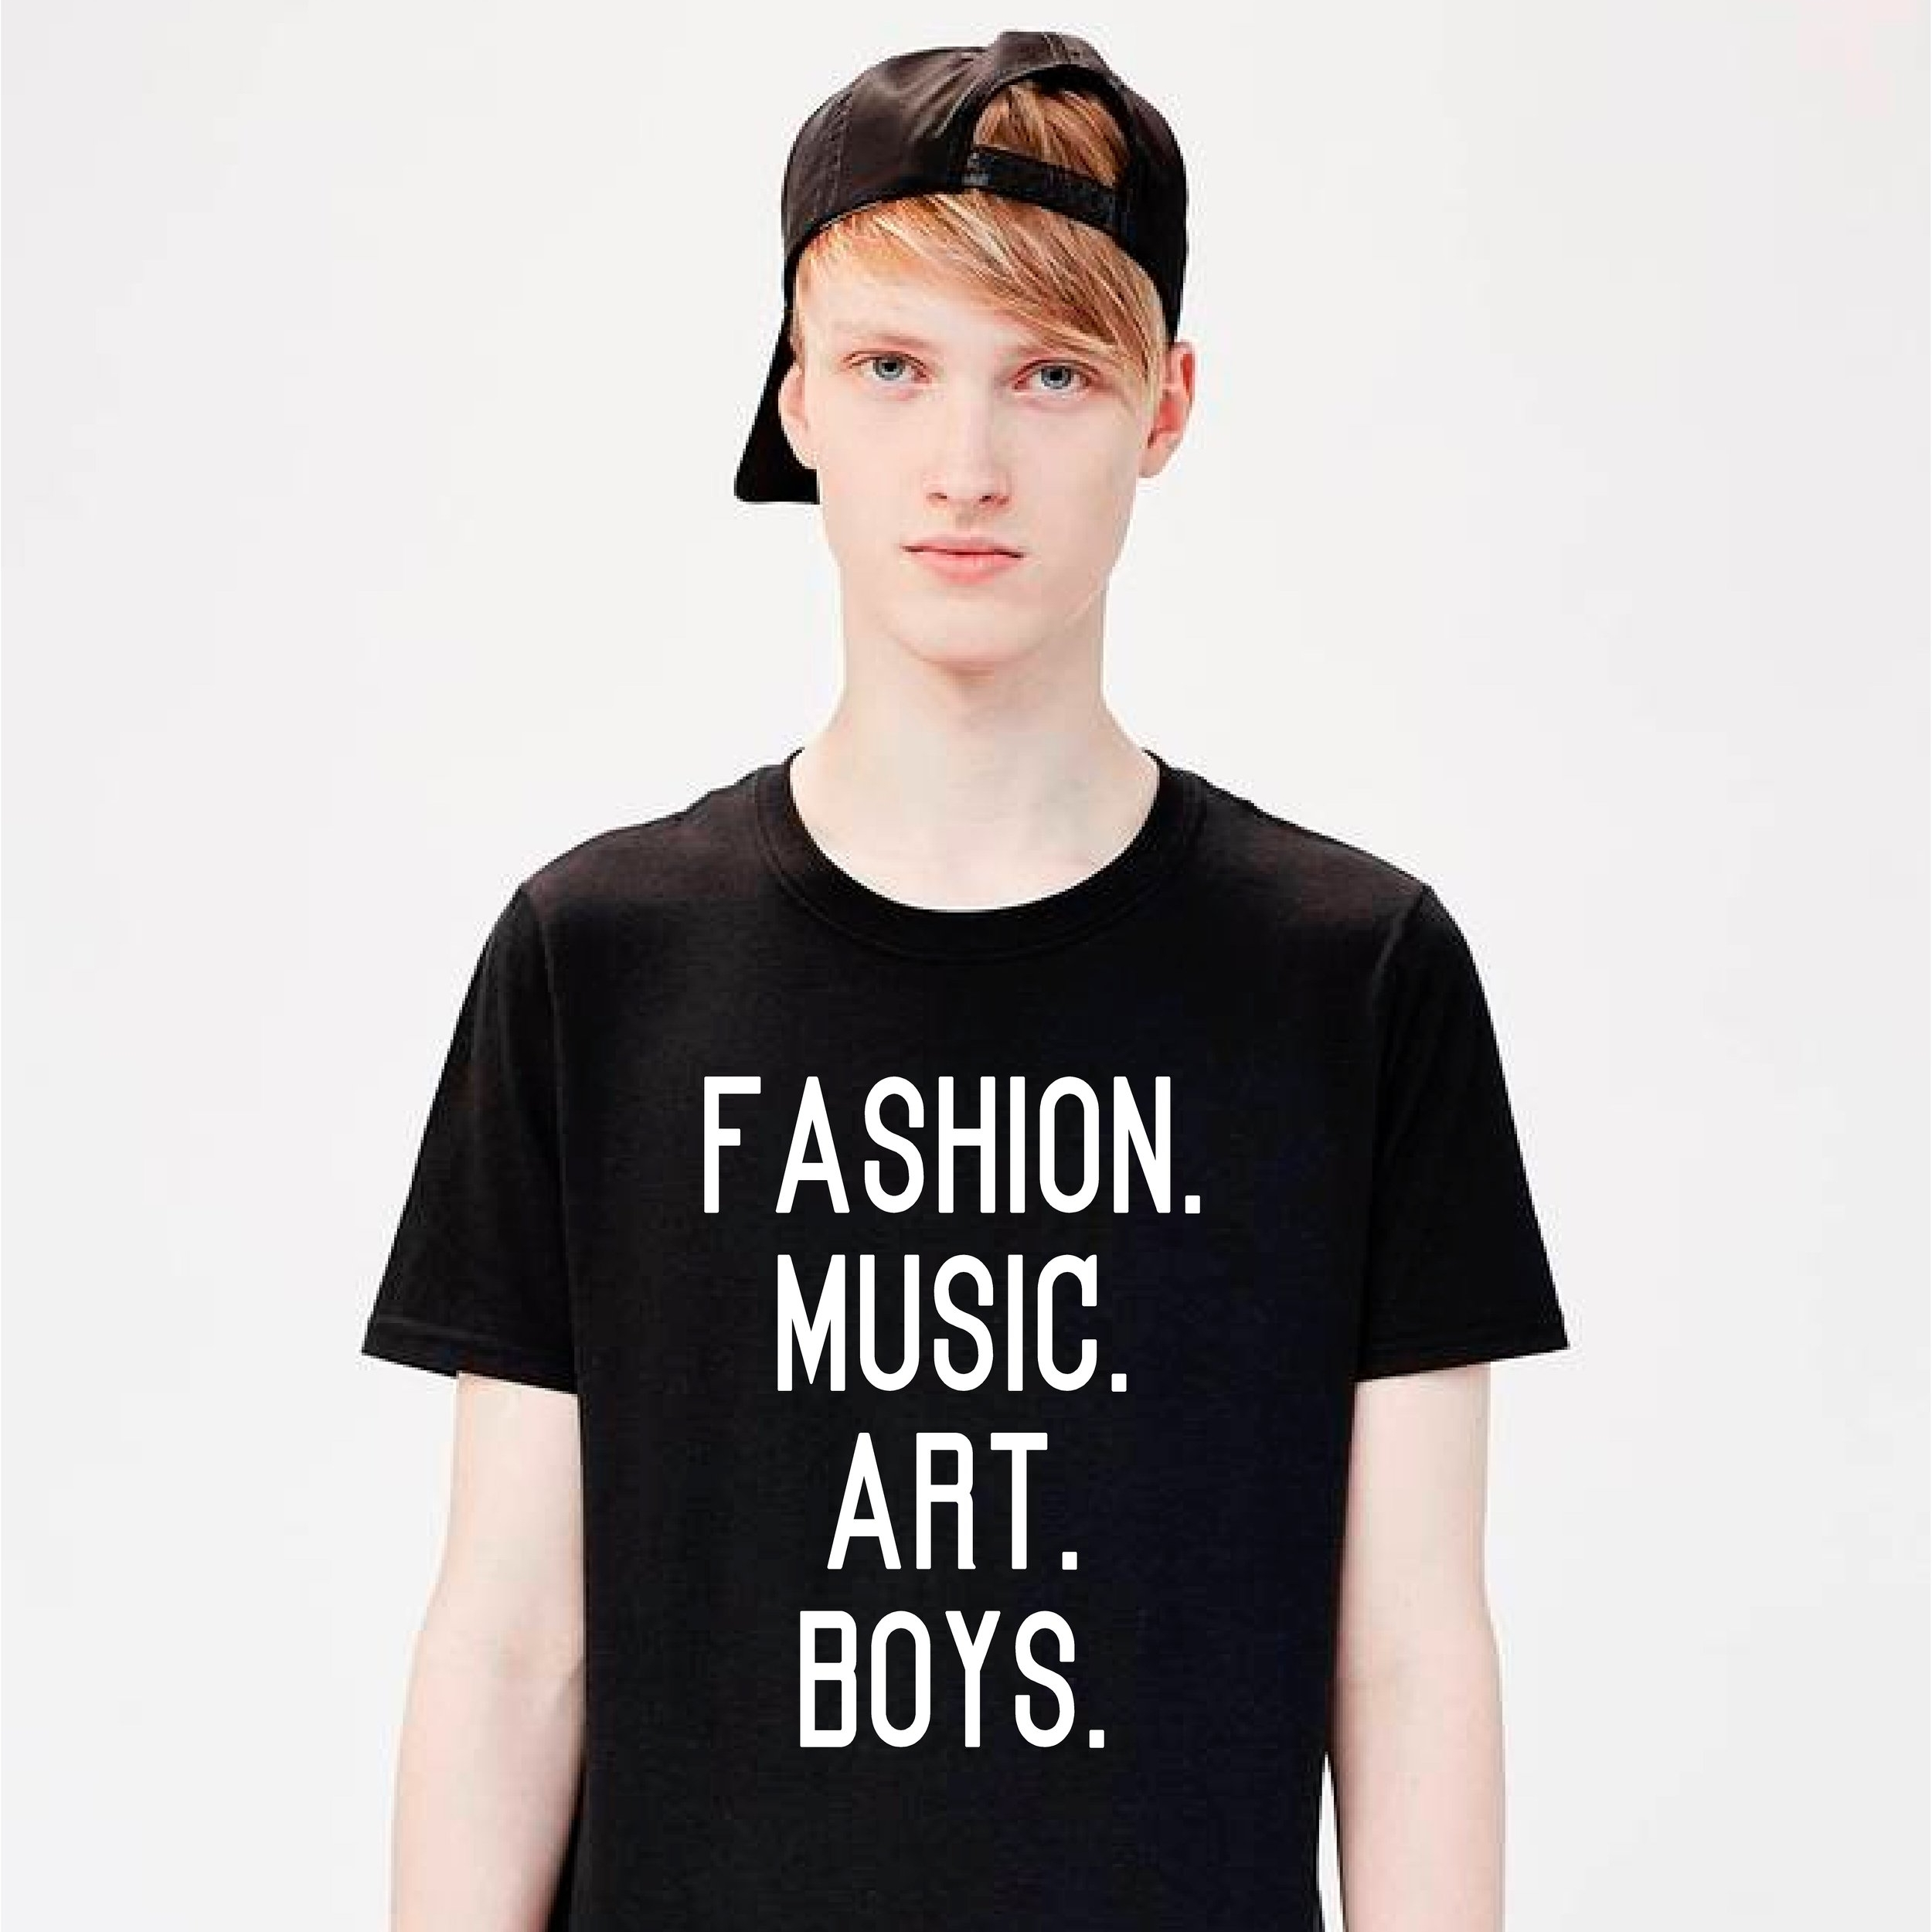 blk tee fashion music art boys.jpg